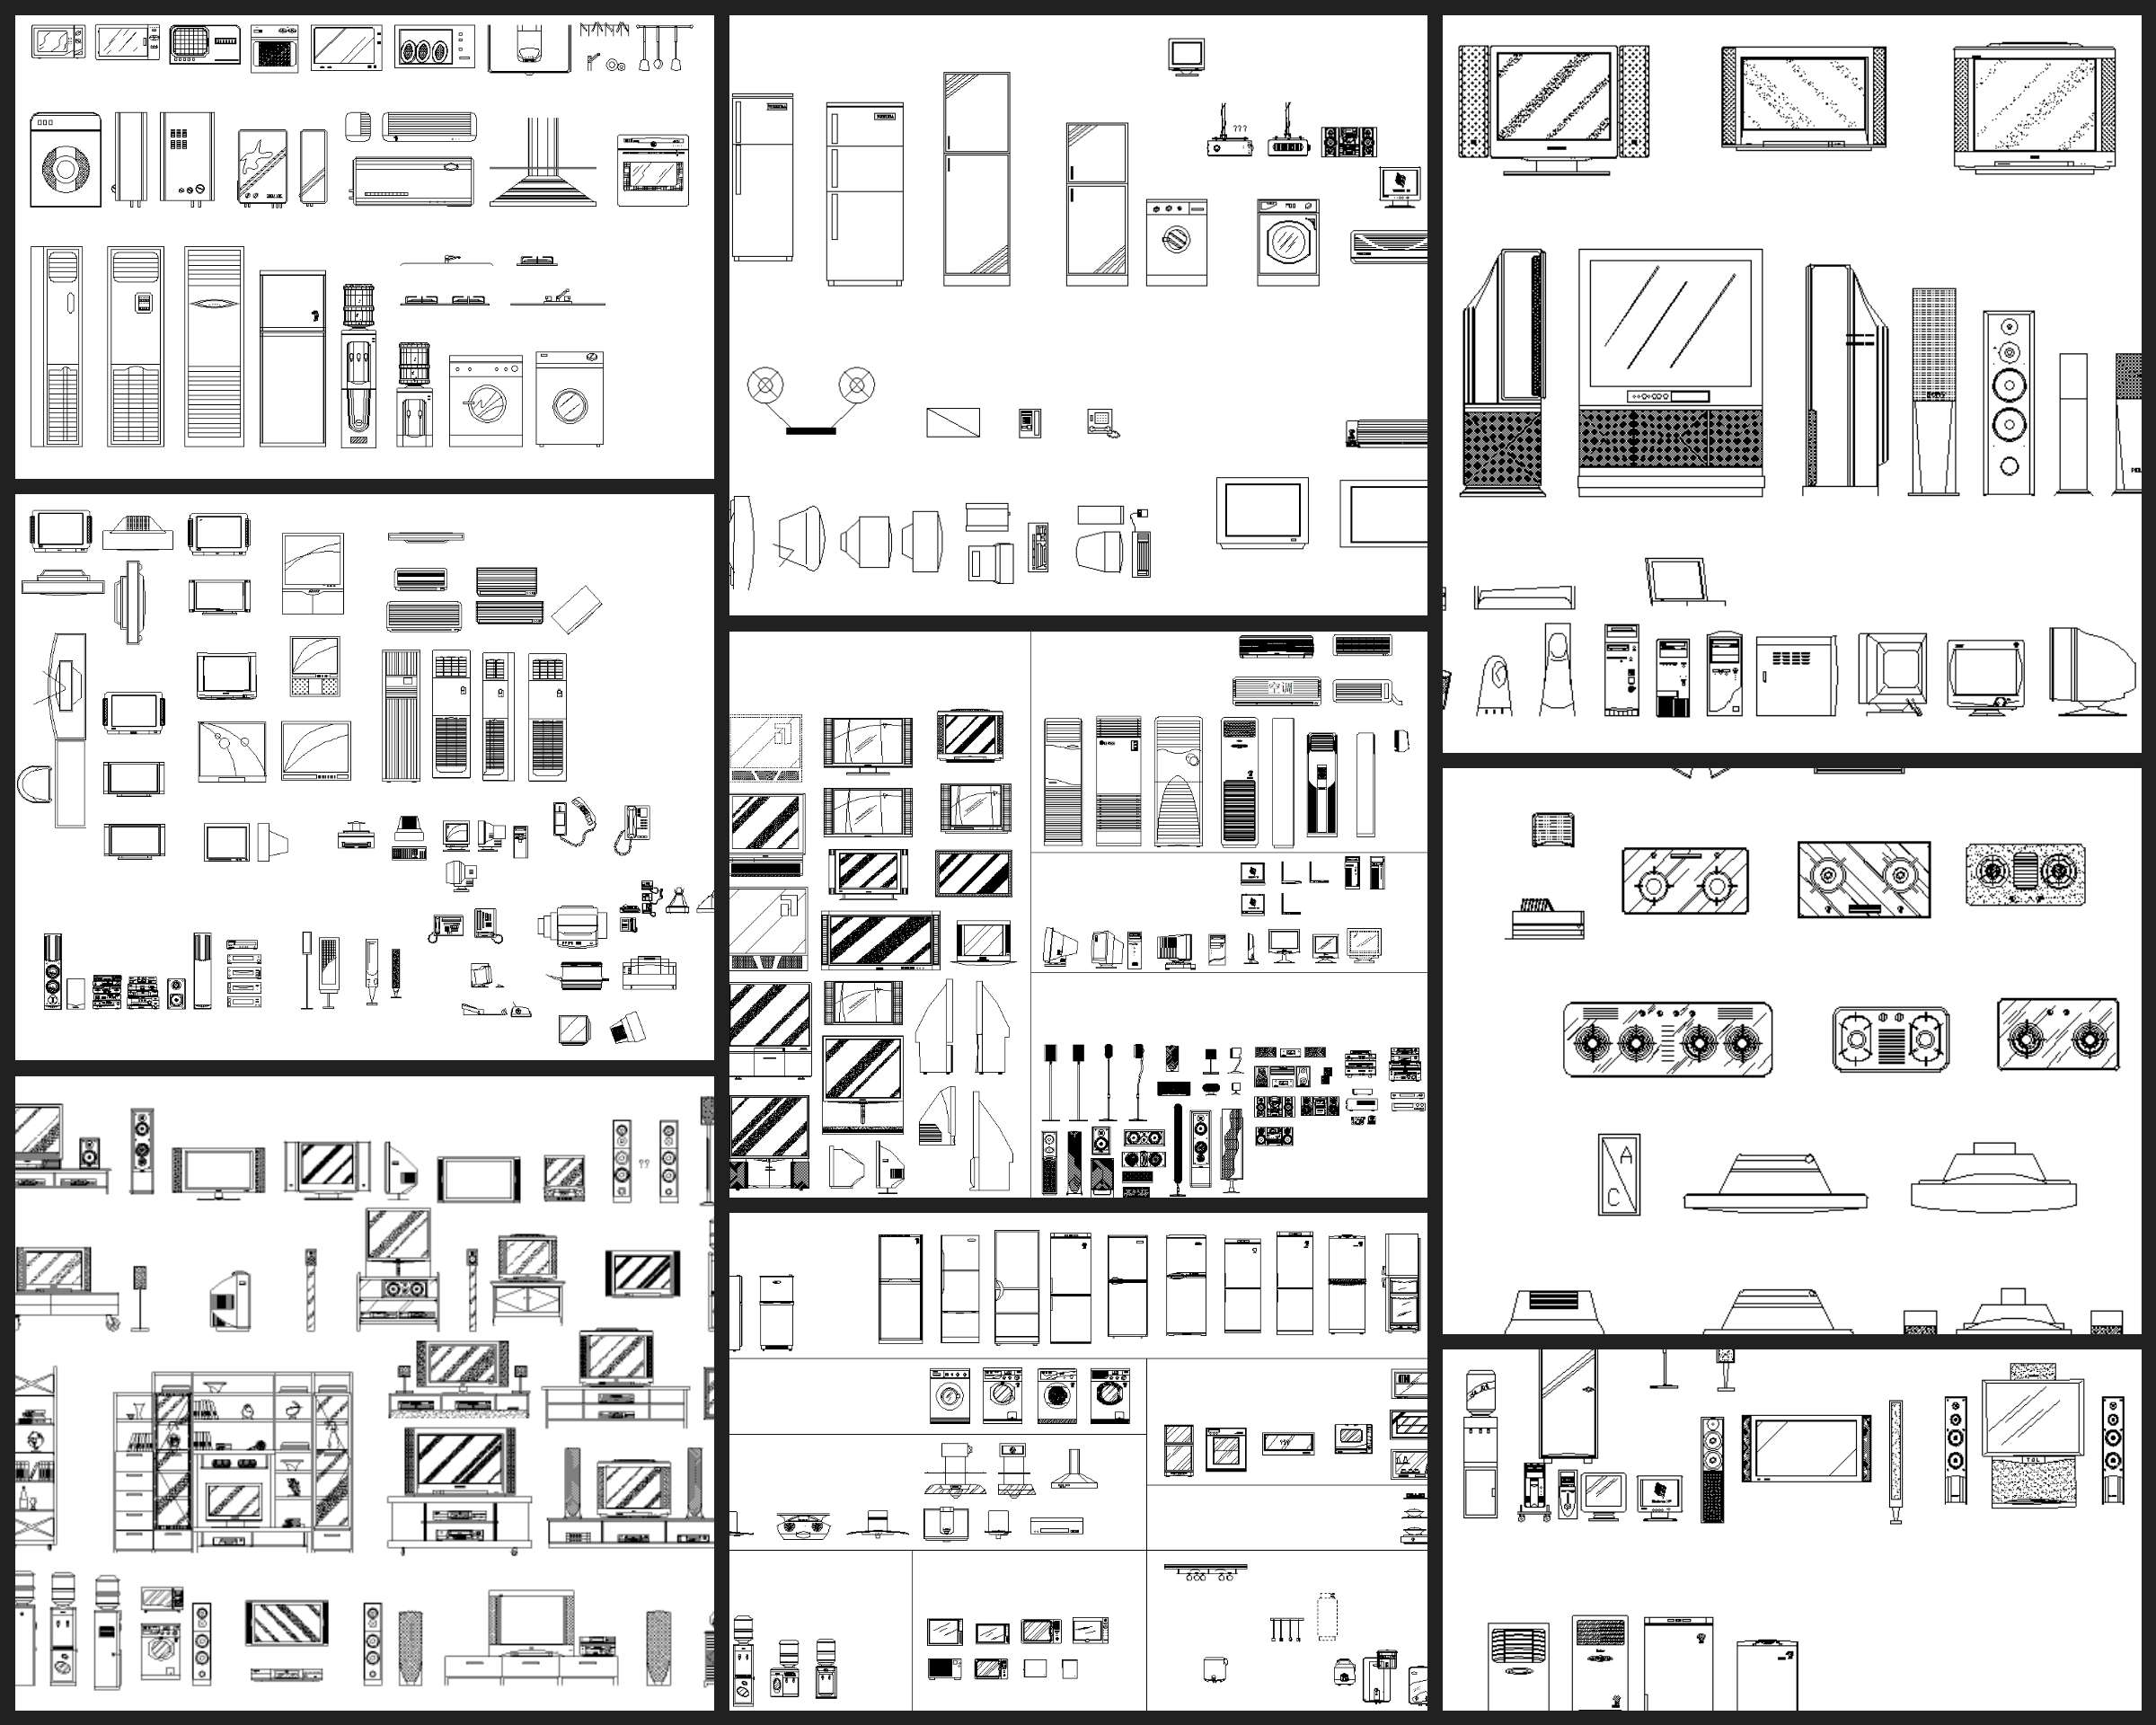 Electrical Appliances Autocad Blocks Collections All Kinds